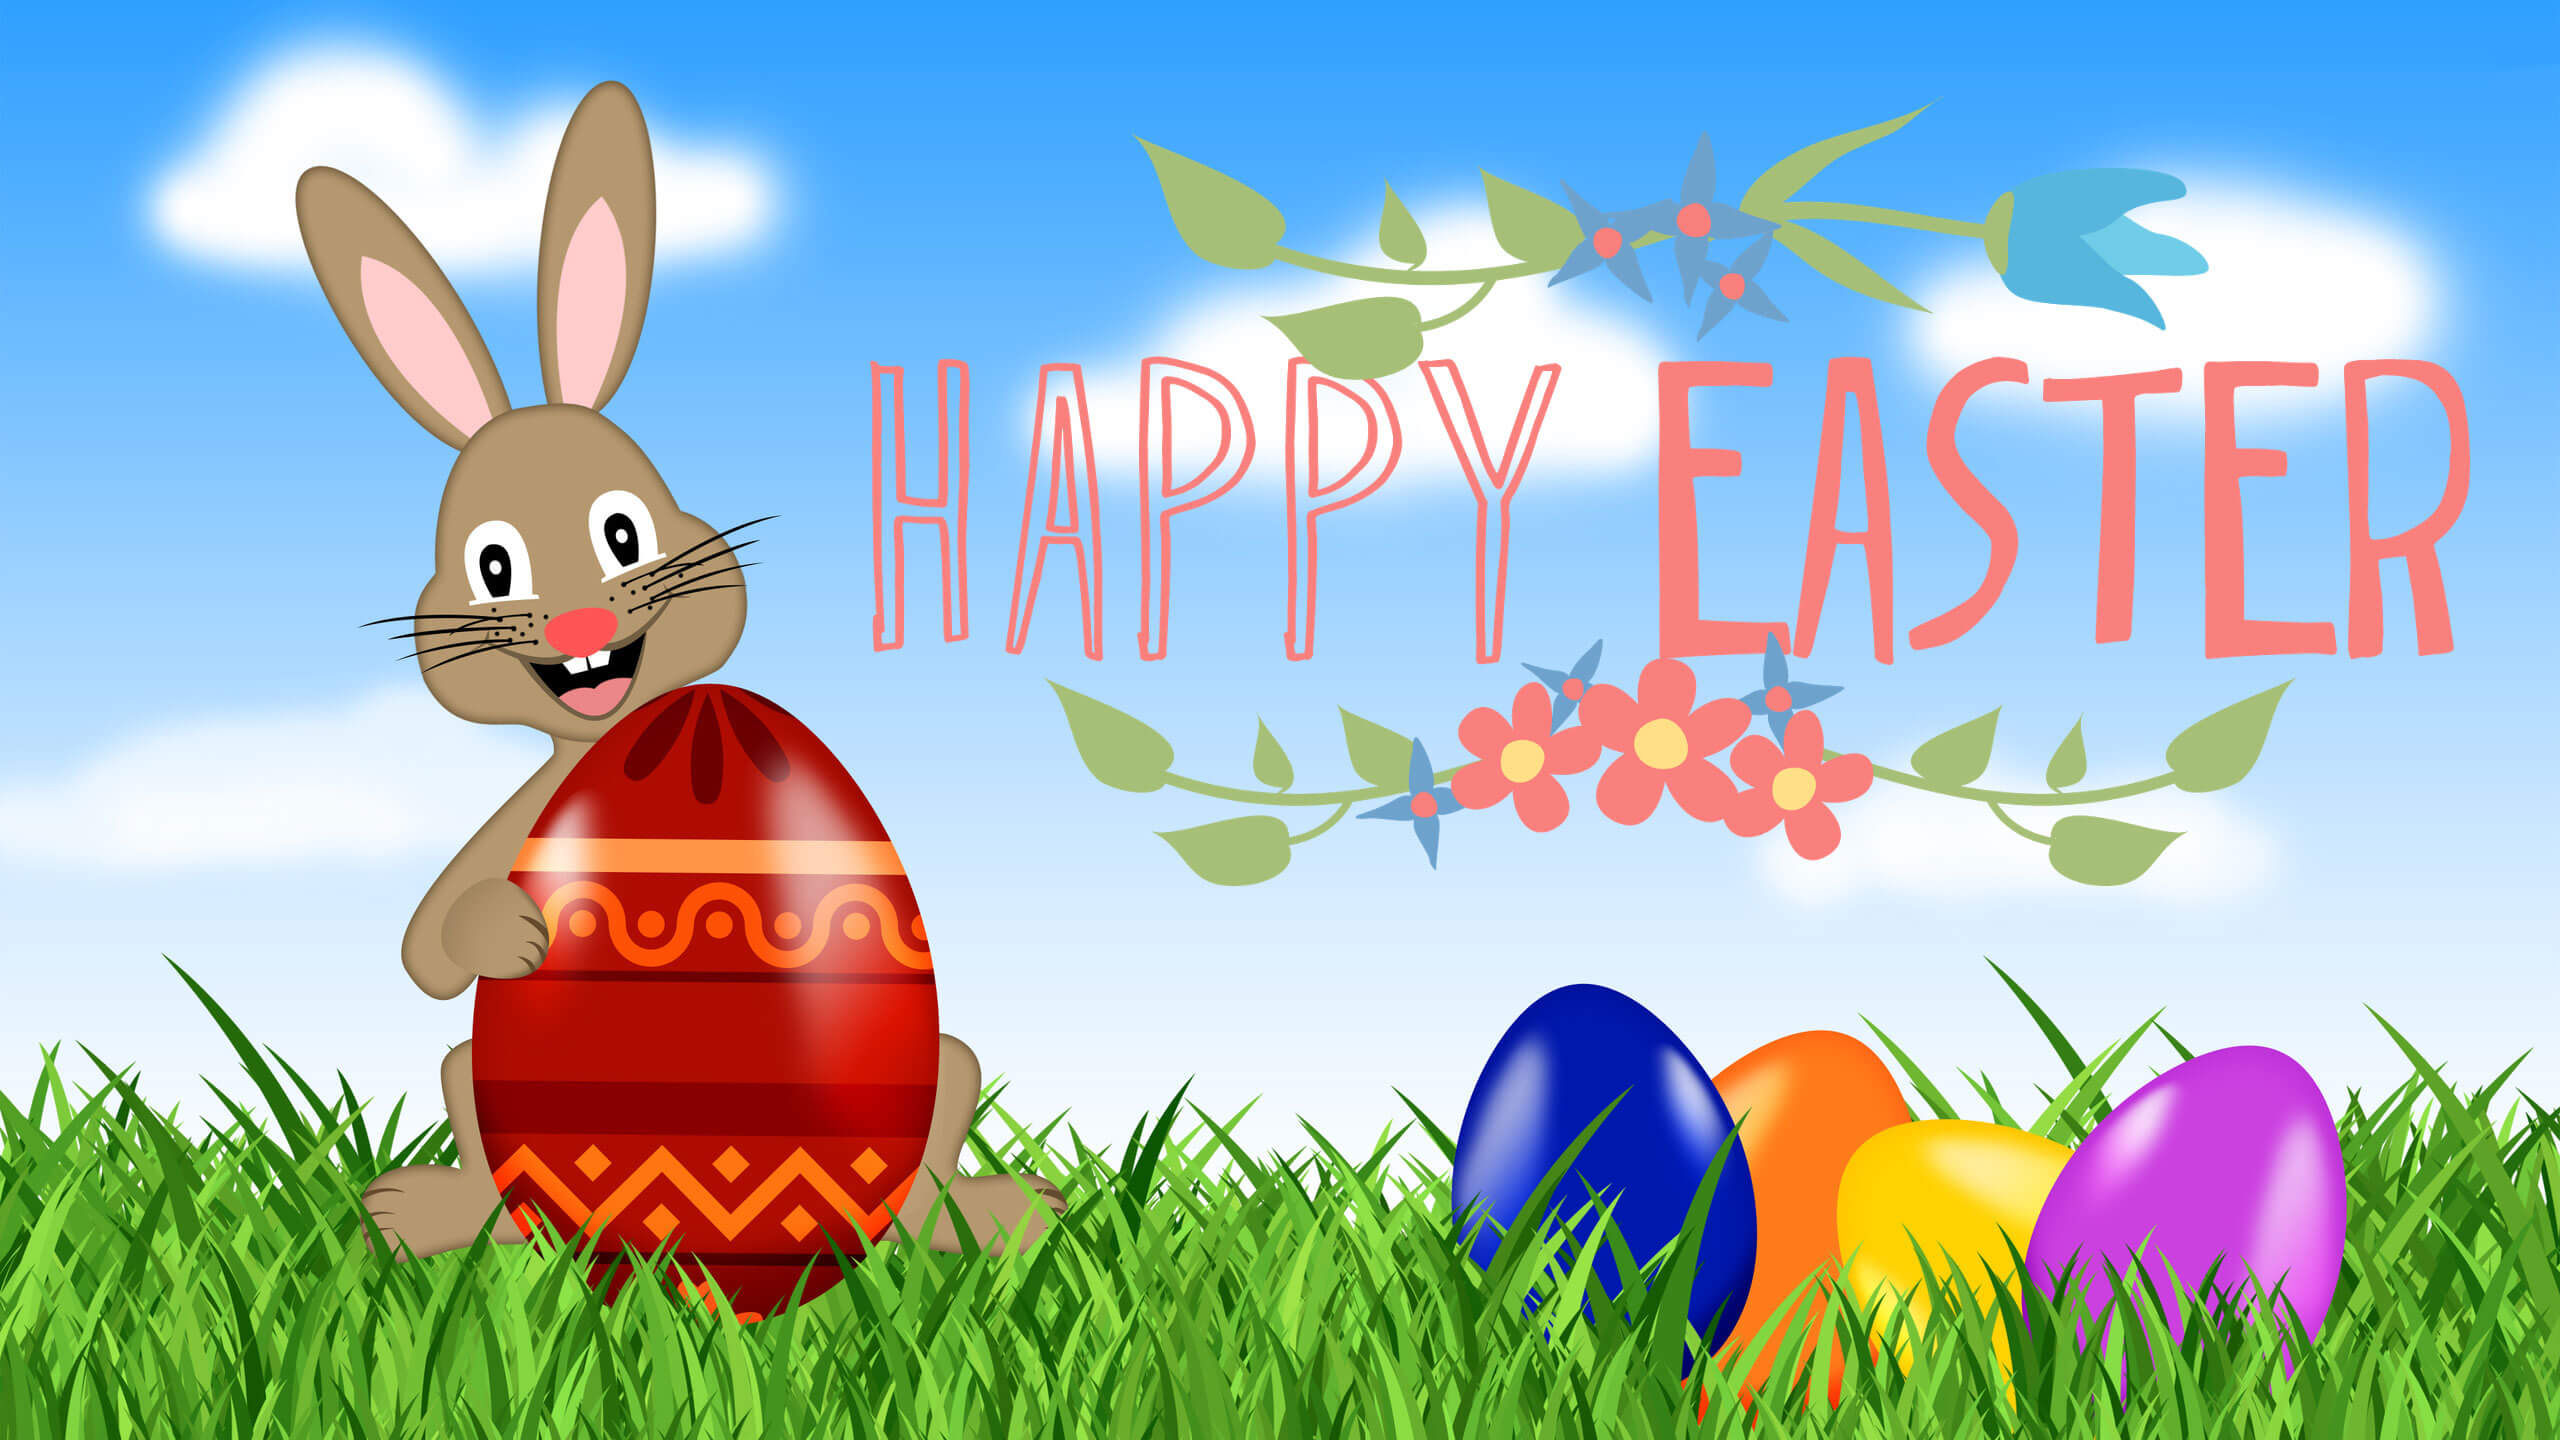 happy easter eggs bunny rabbit new hd wallpaper